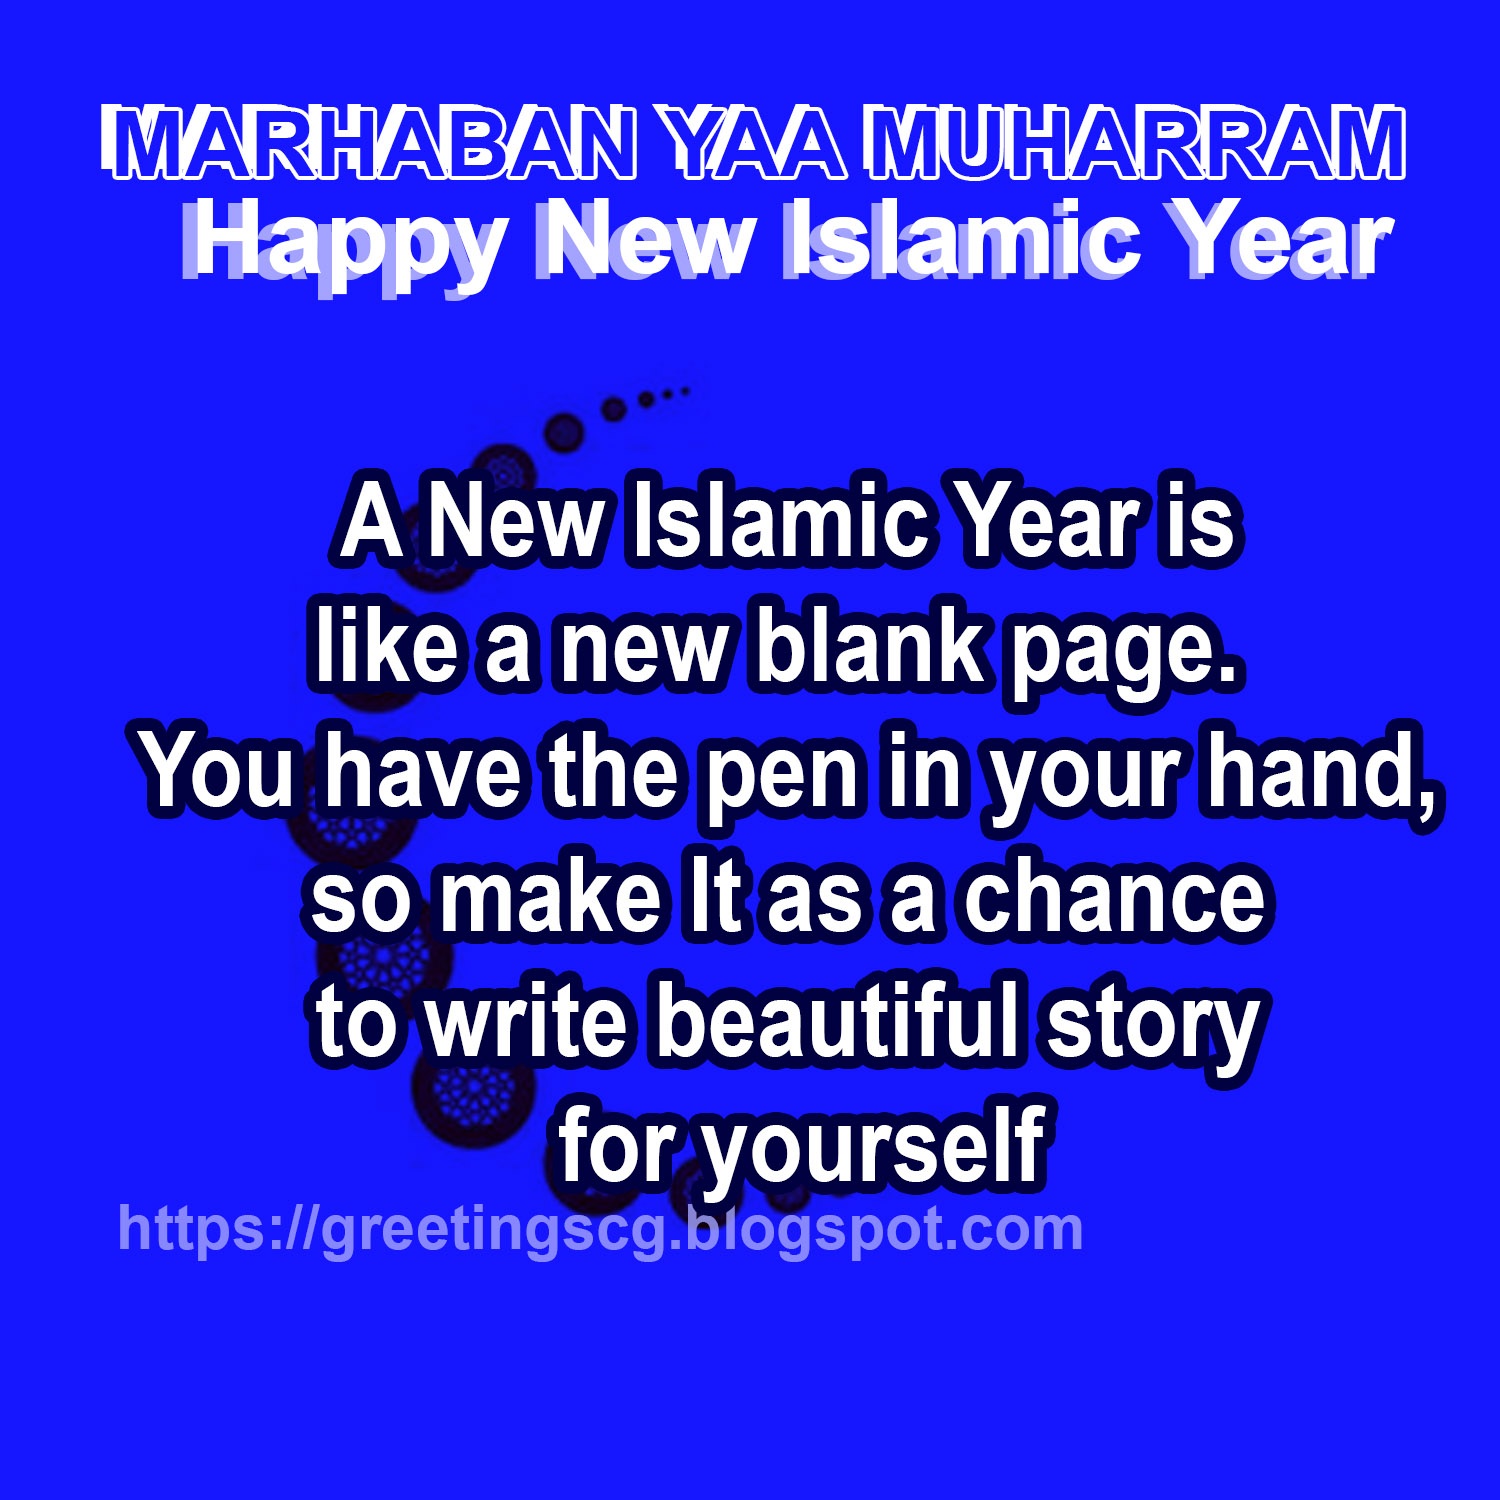 WISHES (MUHARRAM) GREETINGS ISLAMIC NEW YEAR 2019/ 2020